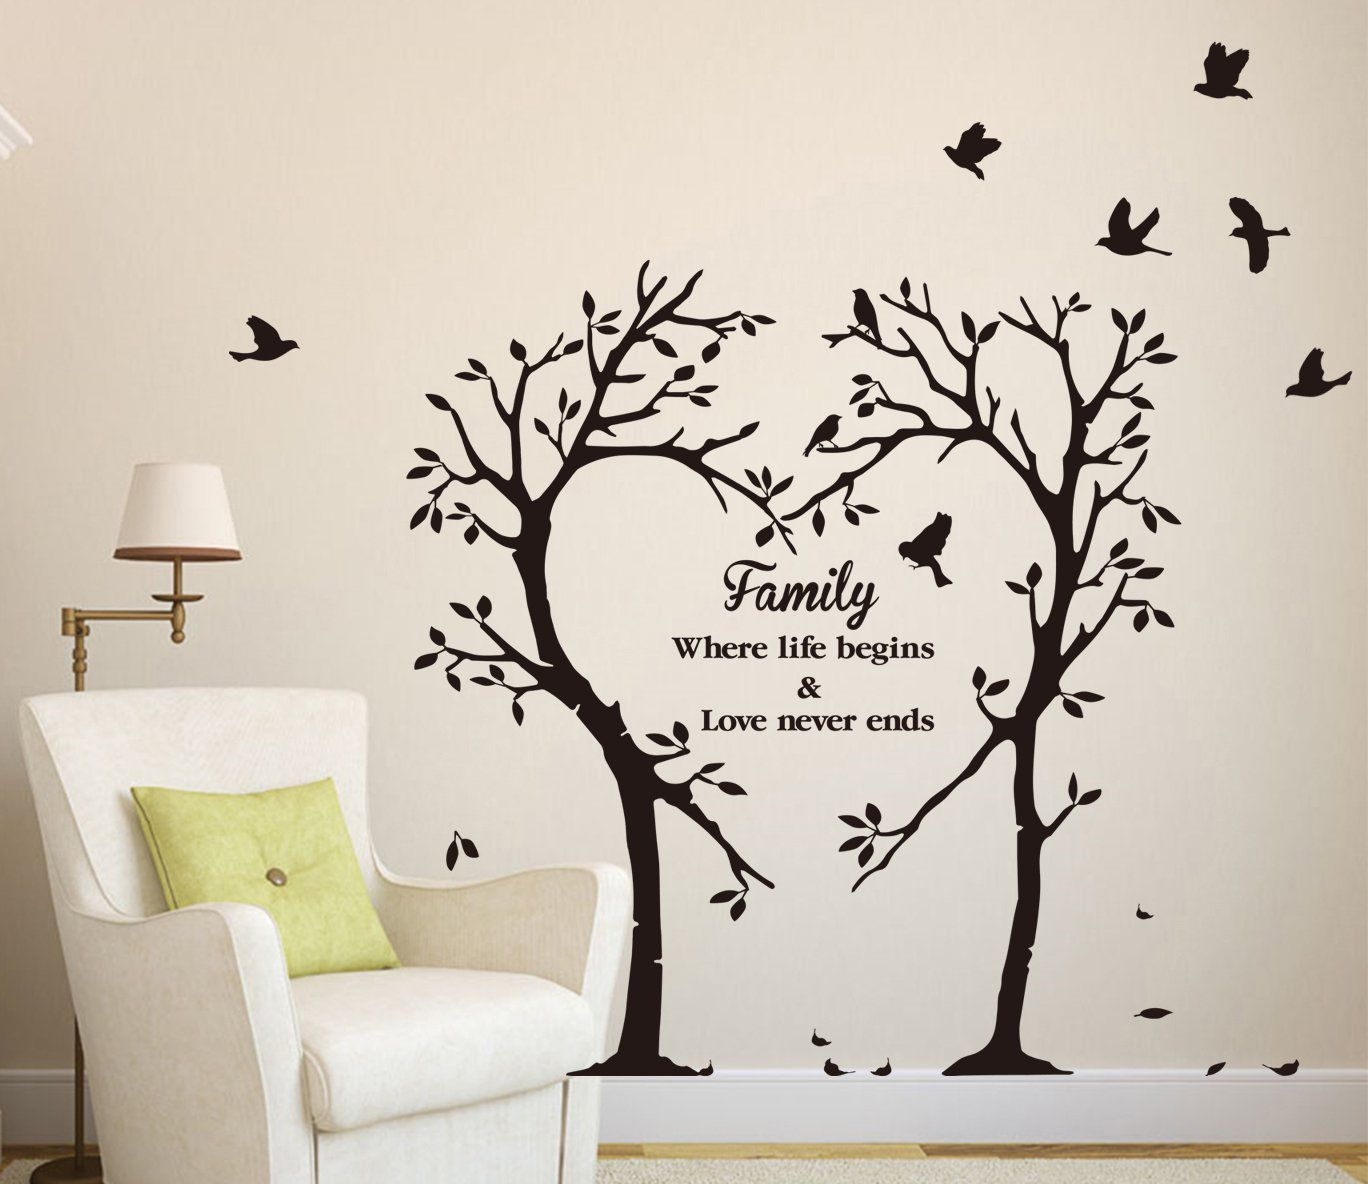 Imagenes de arboles genealogicos buscar con google genealogia wall art decor ideas lamp tree wall art decal simple great nice wallpaper amazing photos paint large ecrater sticker inspirational large family tree wall amipublicfo Choice Image